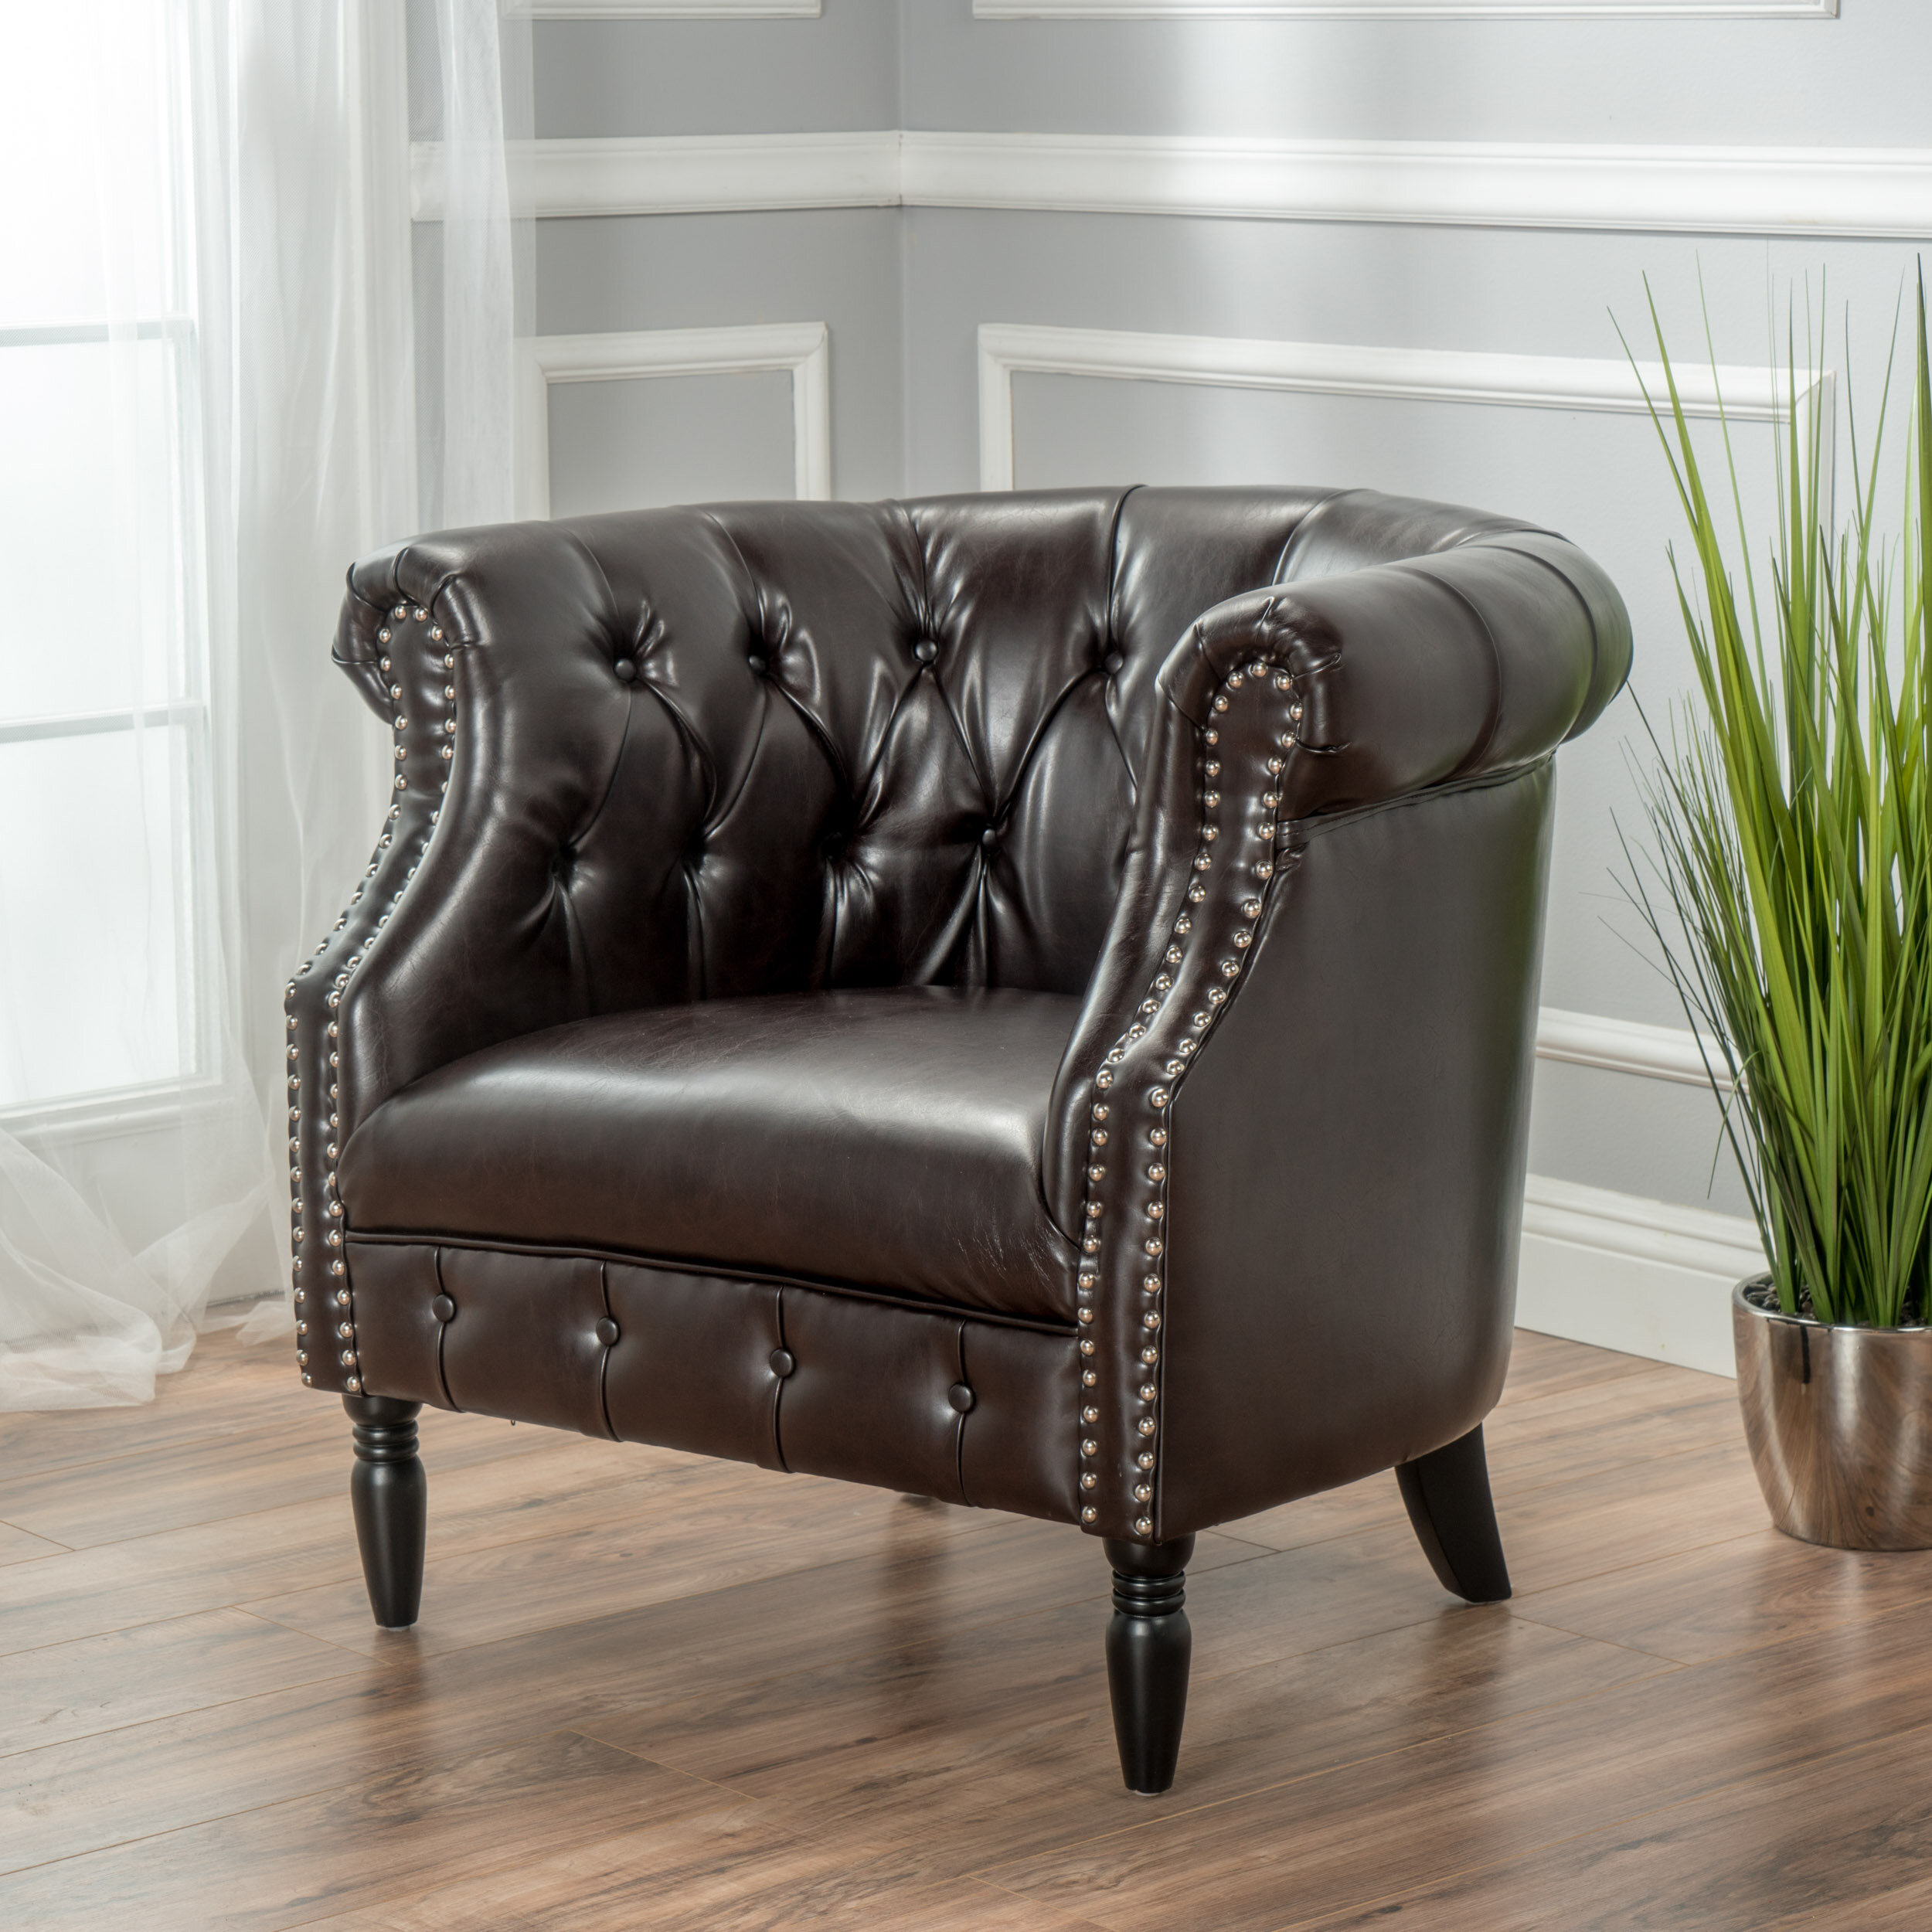 Chesterfield Accent Chairs You'Ll Love In 2021 | Wayfair Pertaining To Starks Tufted Fabric Chesterfield Chair And Ottoman Sets (View 3 of 15)